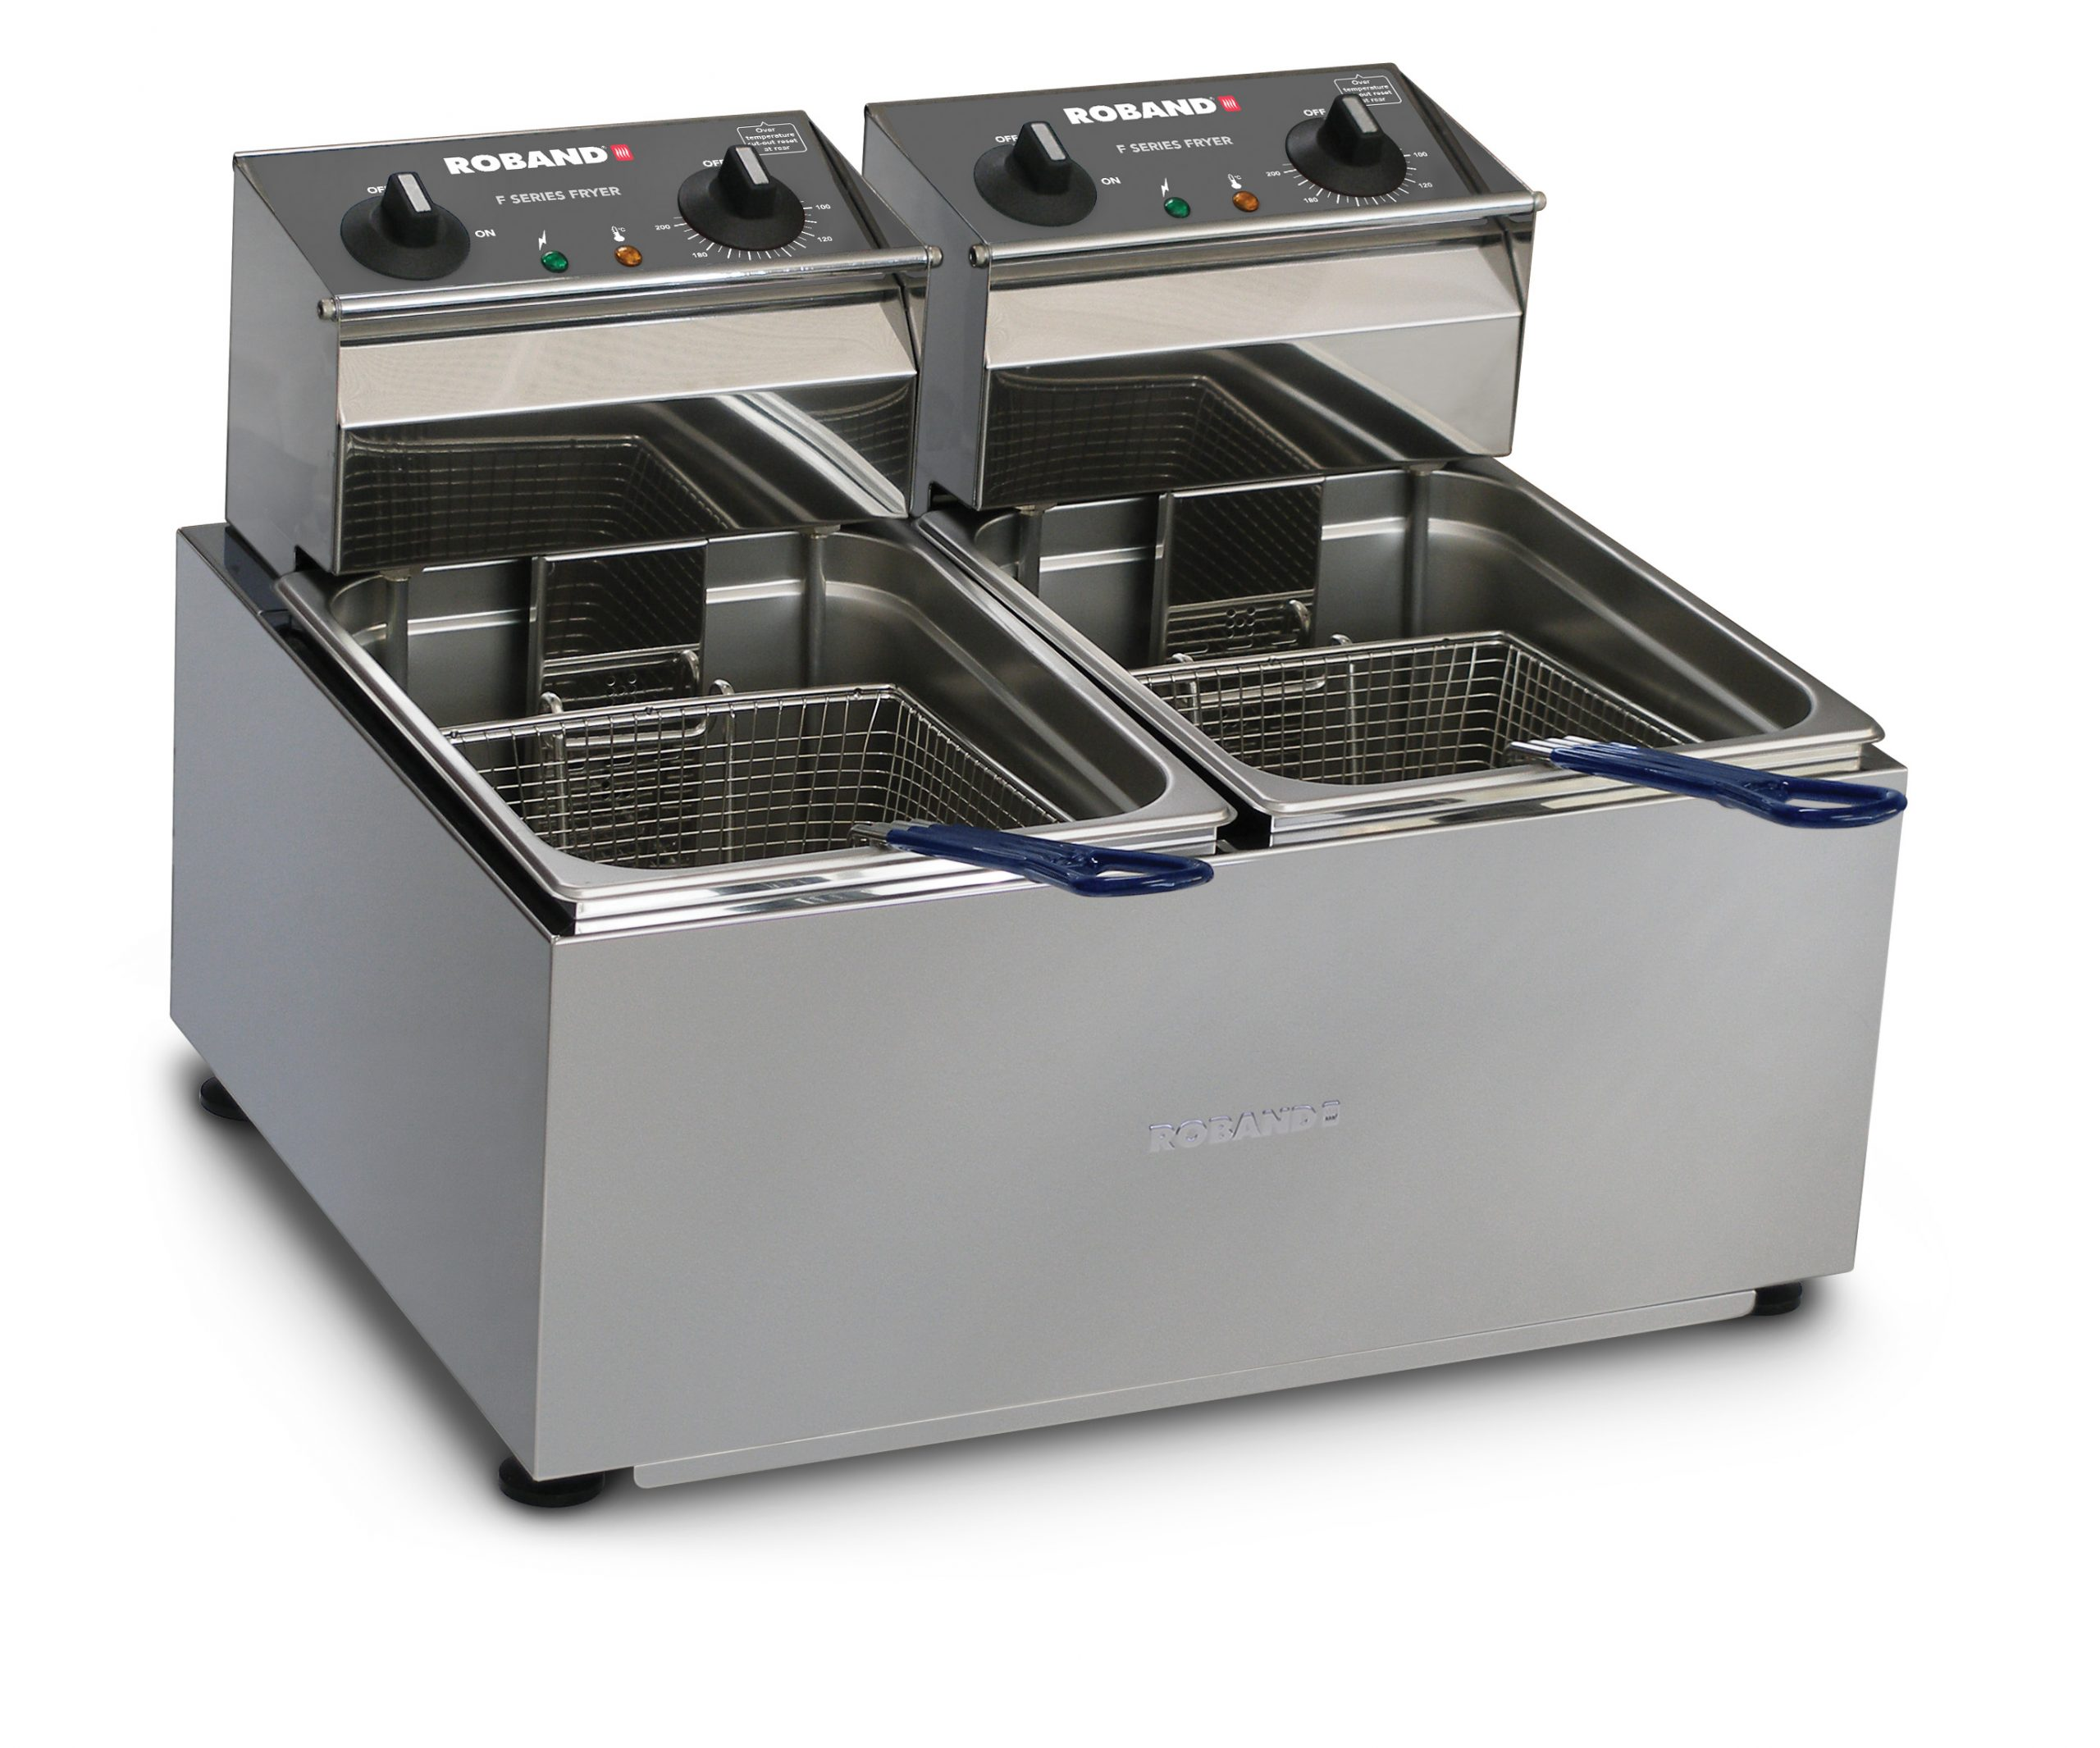 Roband F28 Countertop Fryer